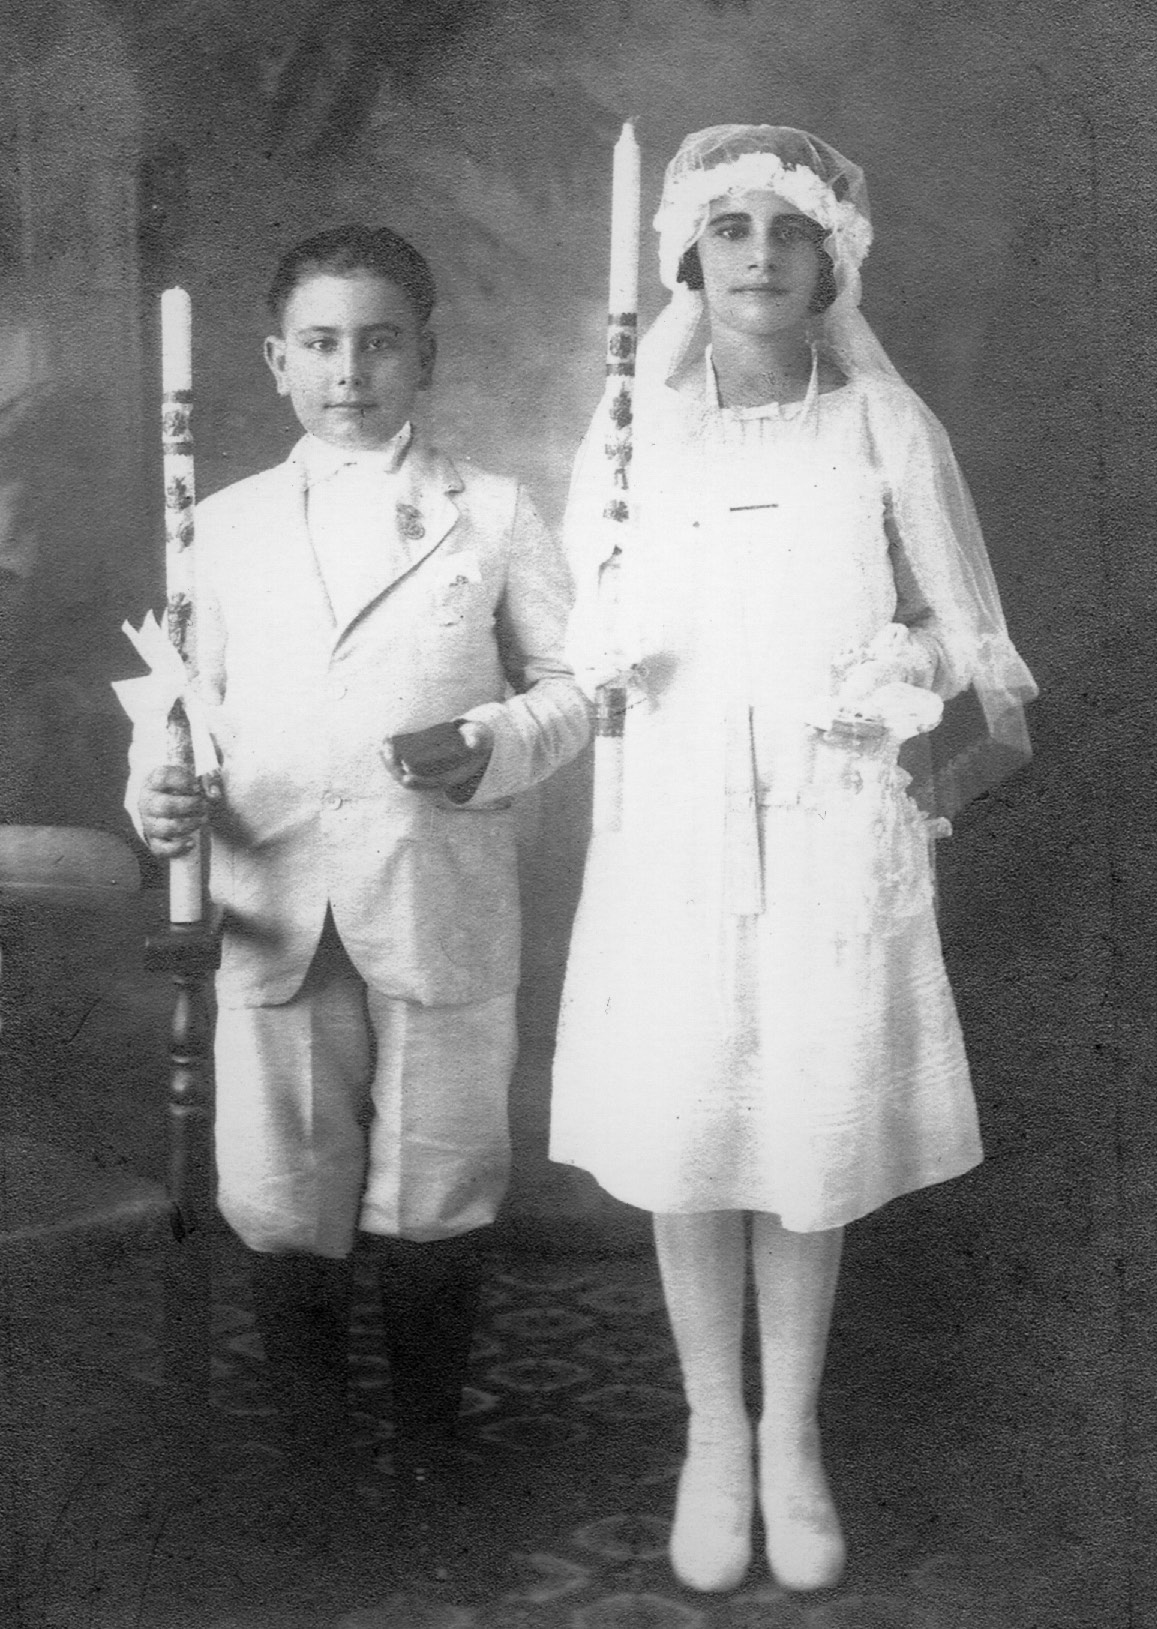 Josephine and Samuel Bosco